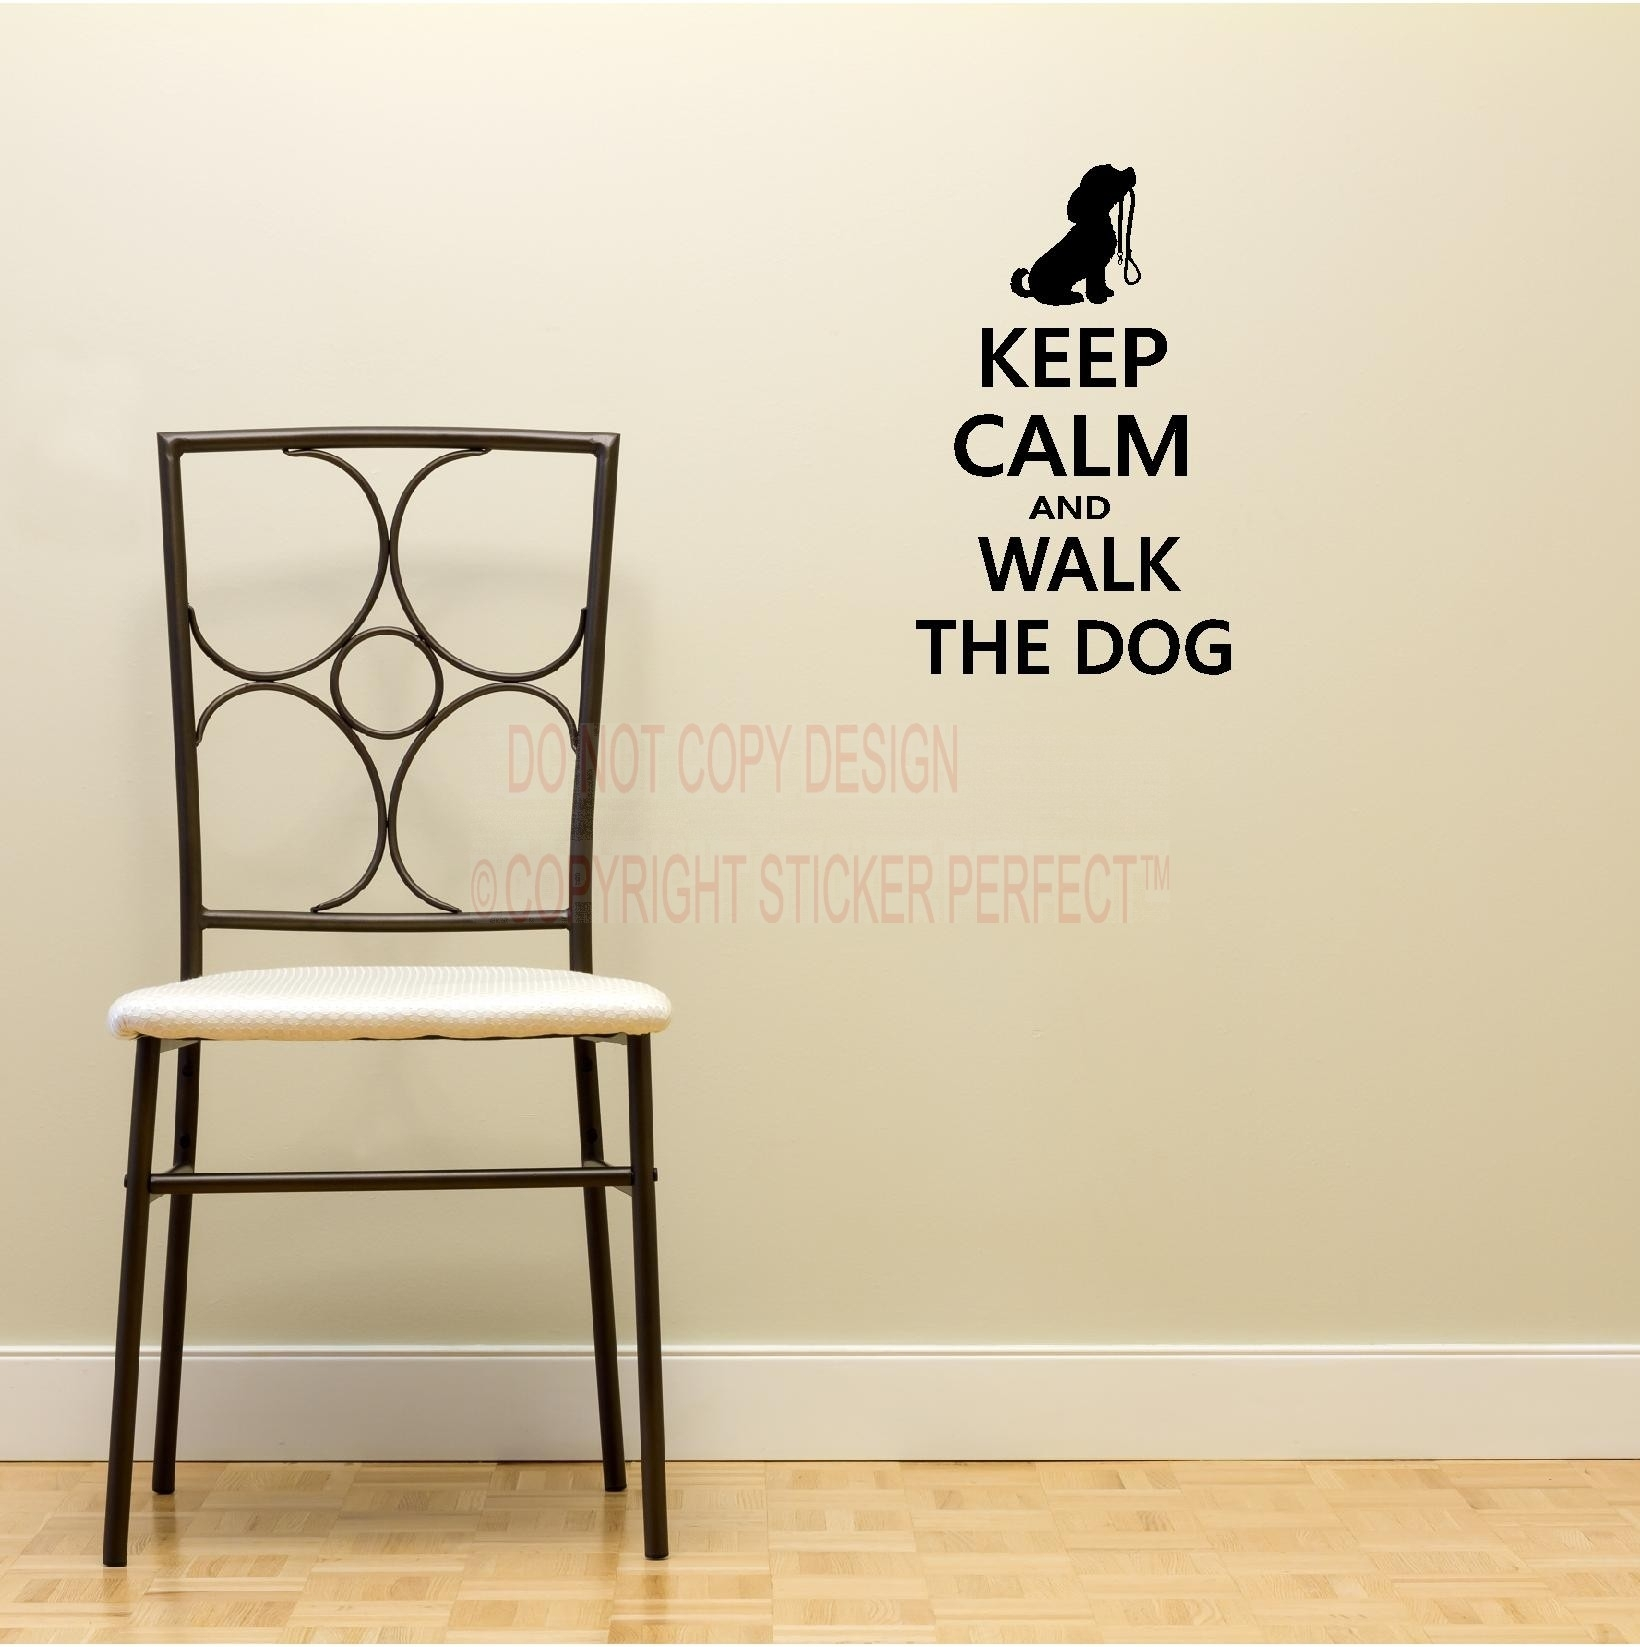 2 Keep Calm And Walk The Dog Decals Cute Puppy Wall Art Wall Sayings Pertaining To Latest Wall Art Sayings (View 1 of 20)